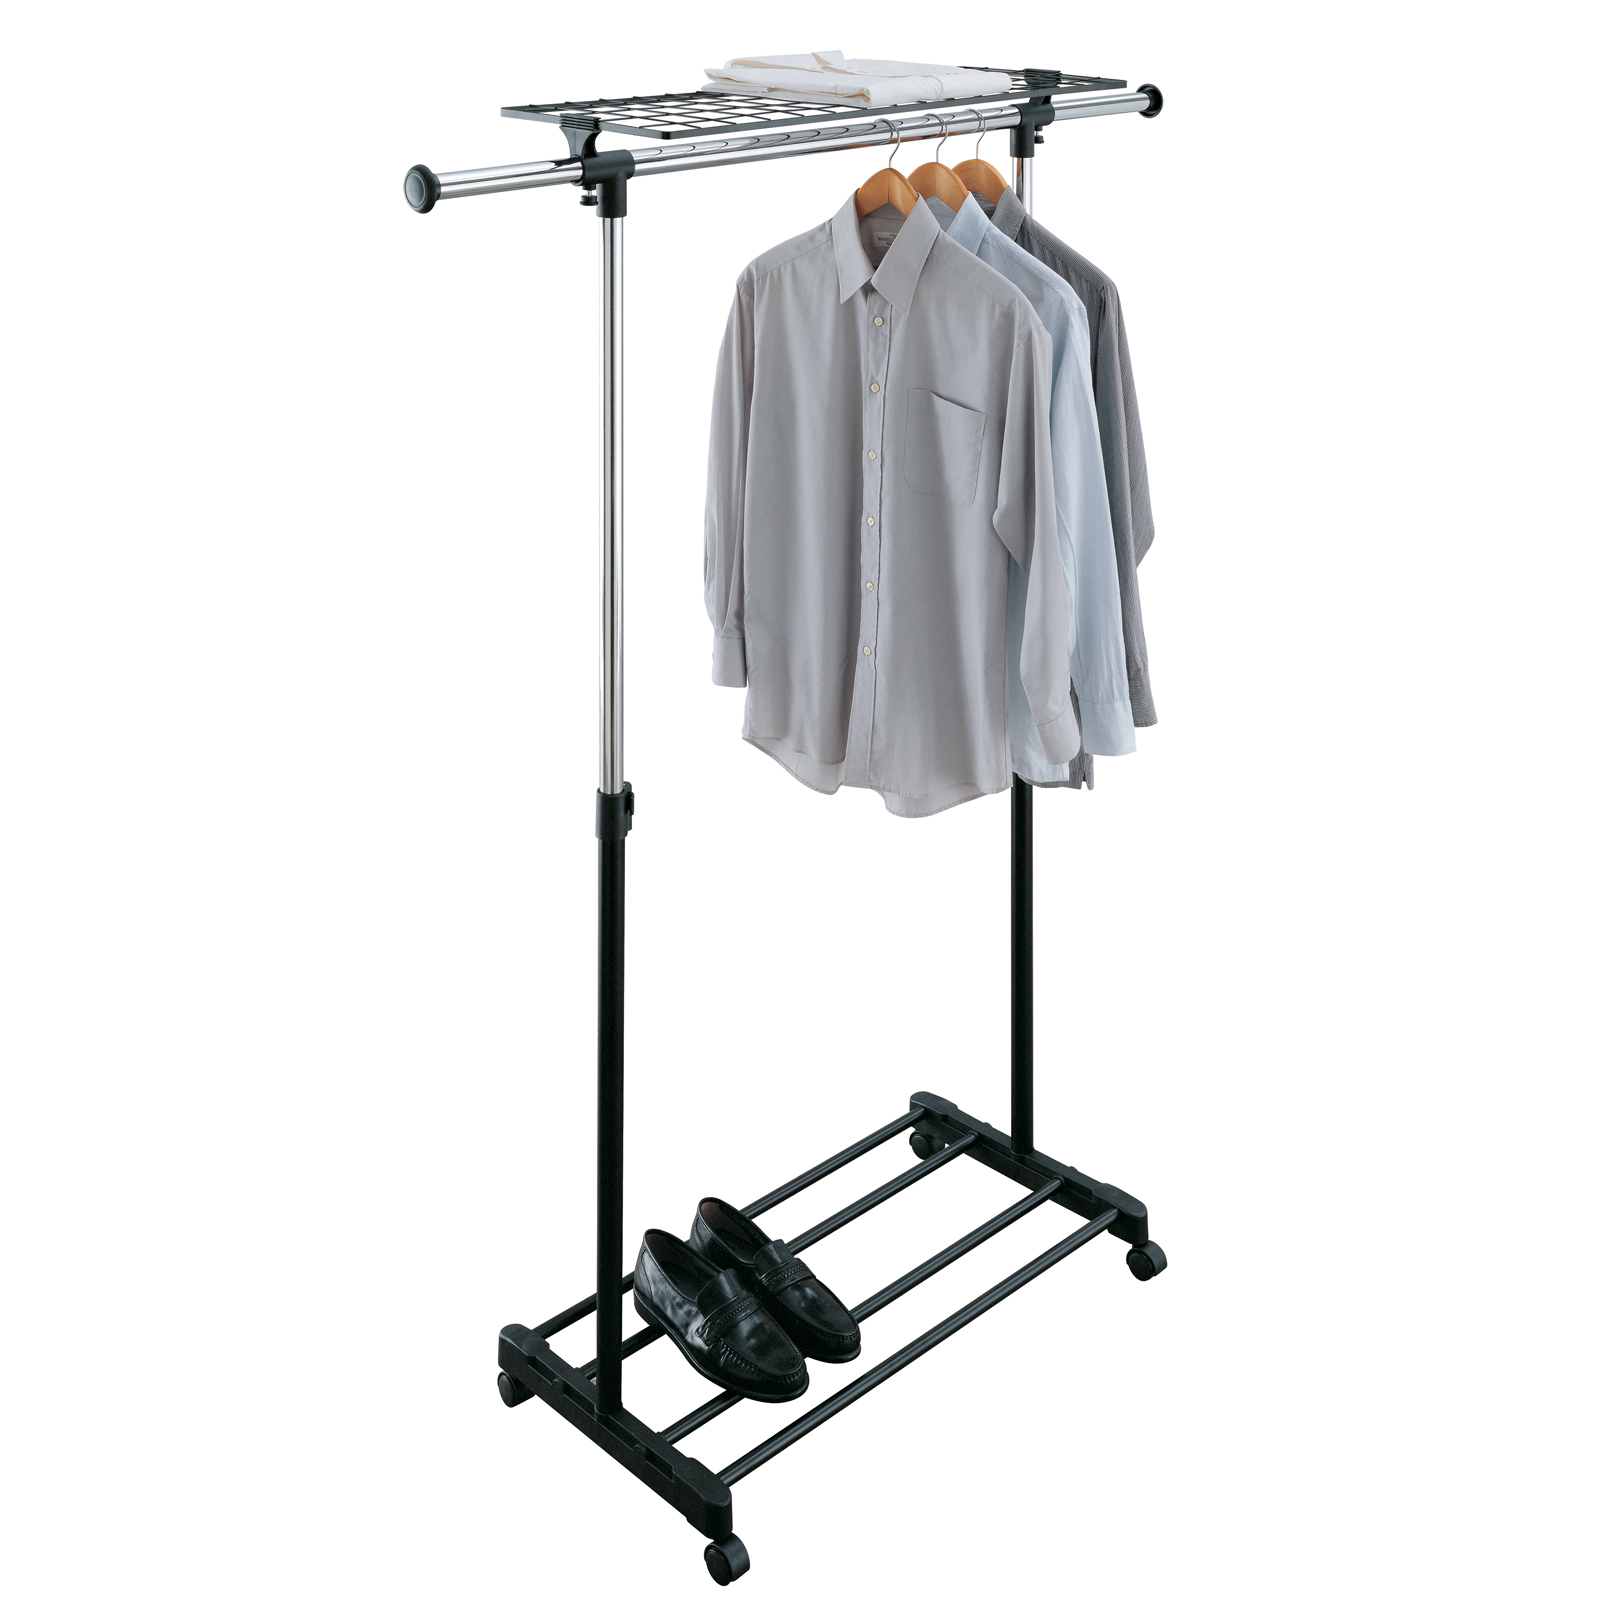 ... Adjustable Rolling Clothing Rack, Steel Garment Rack